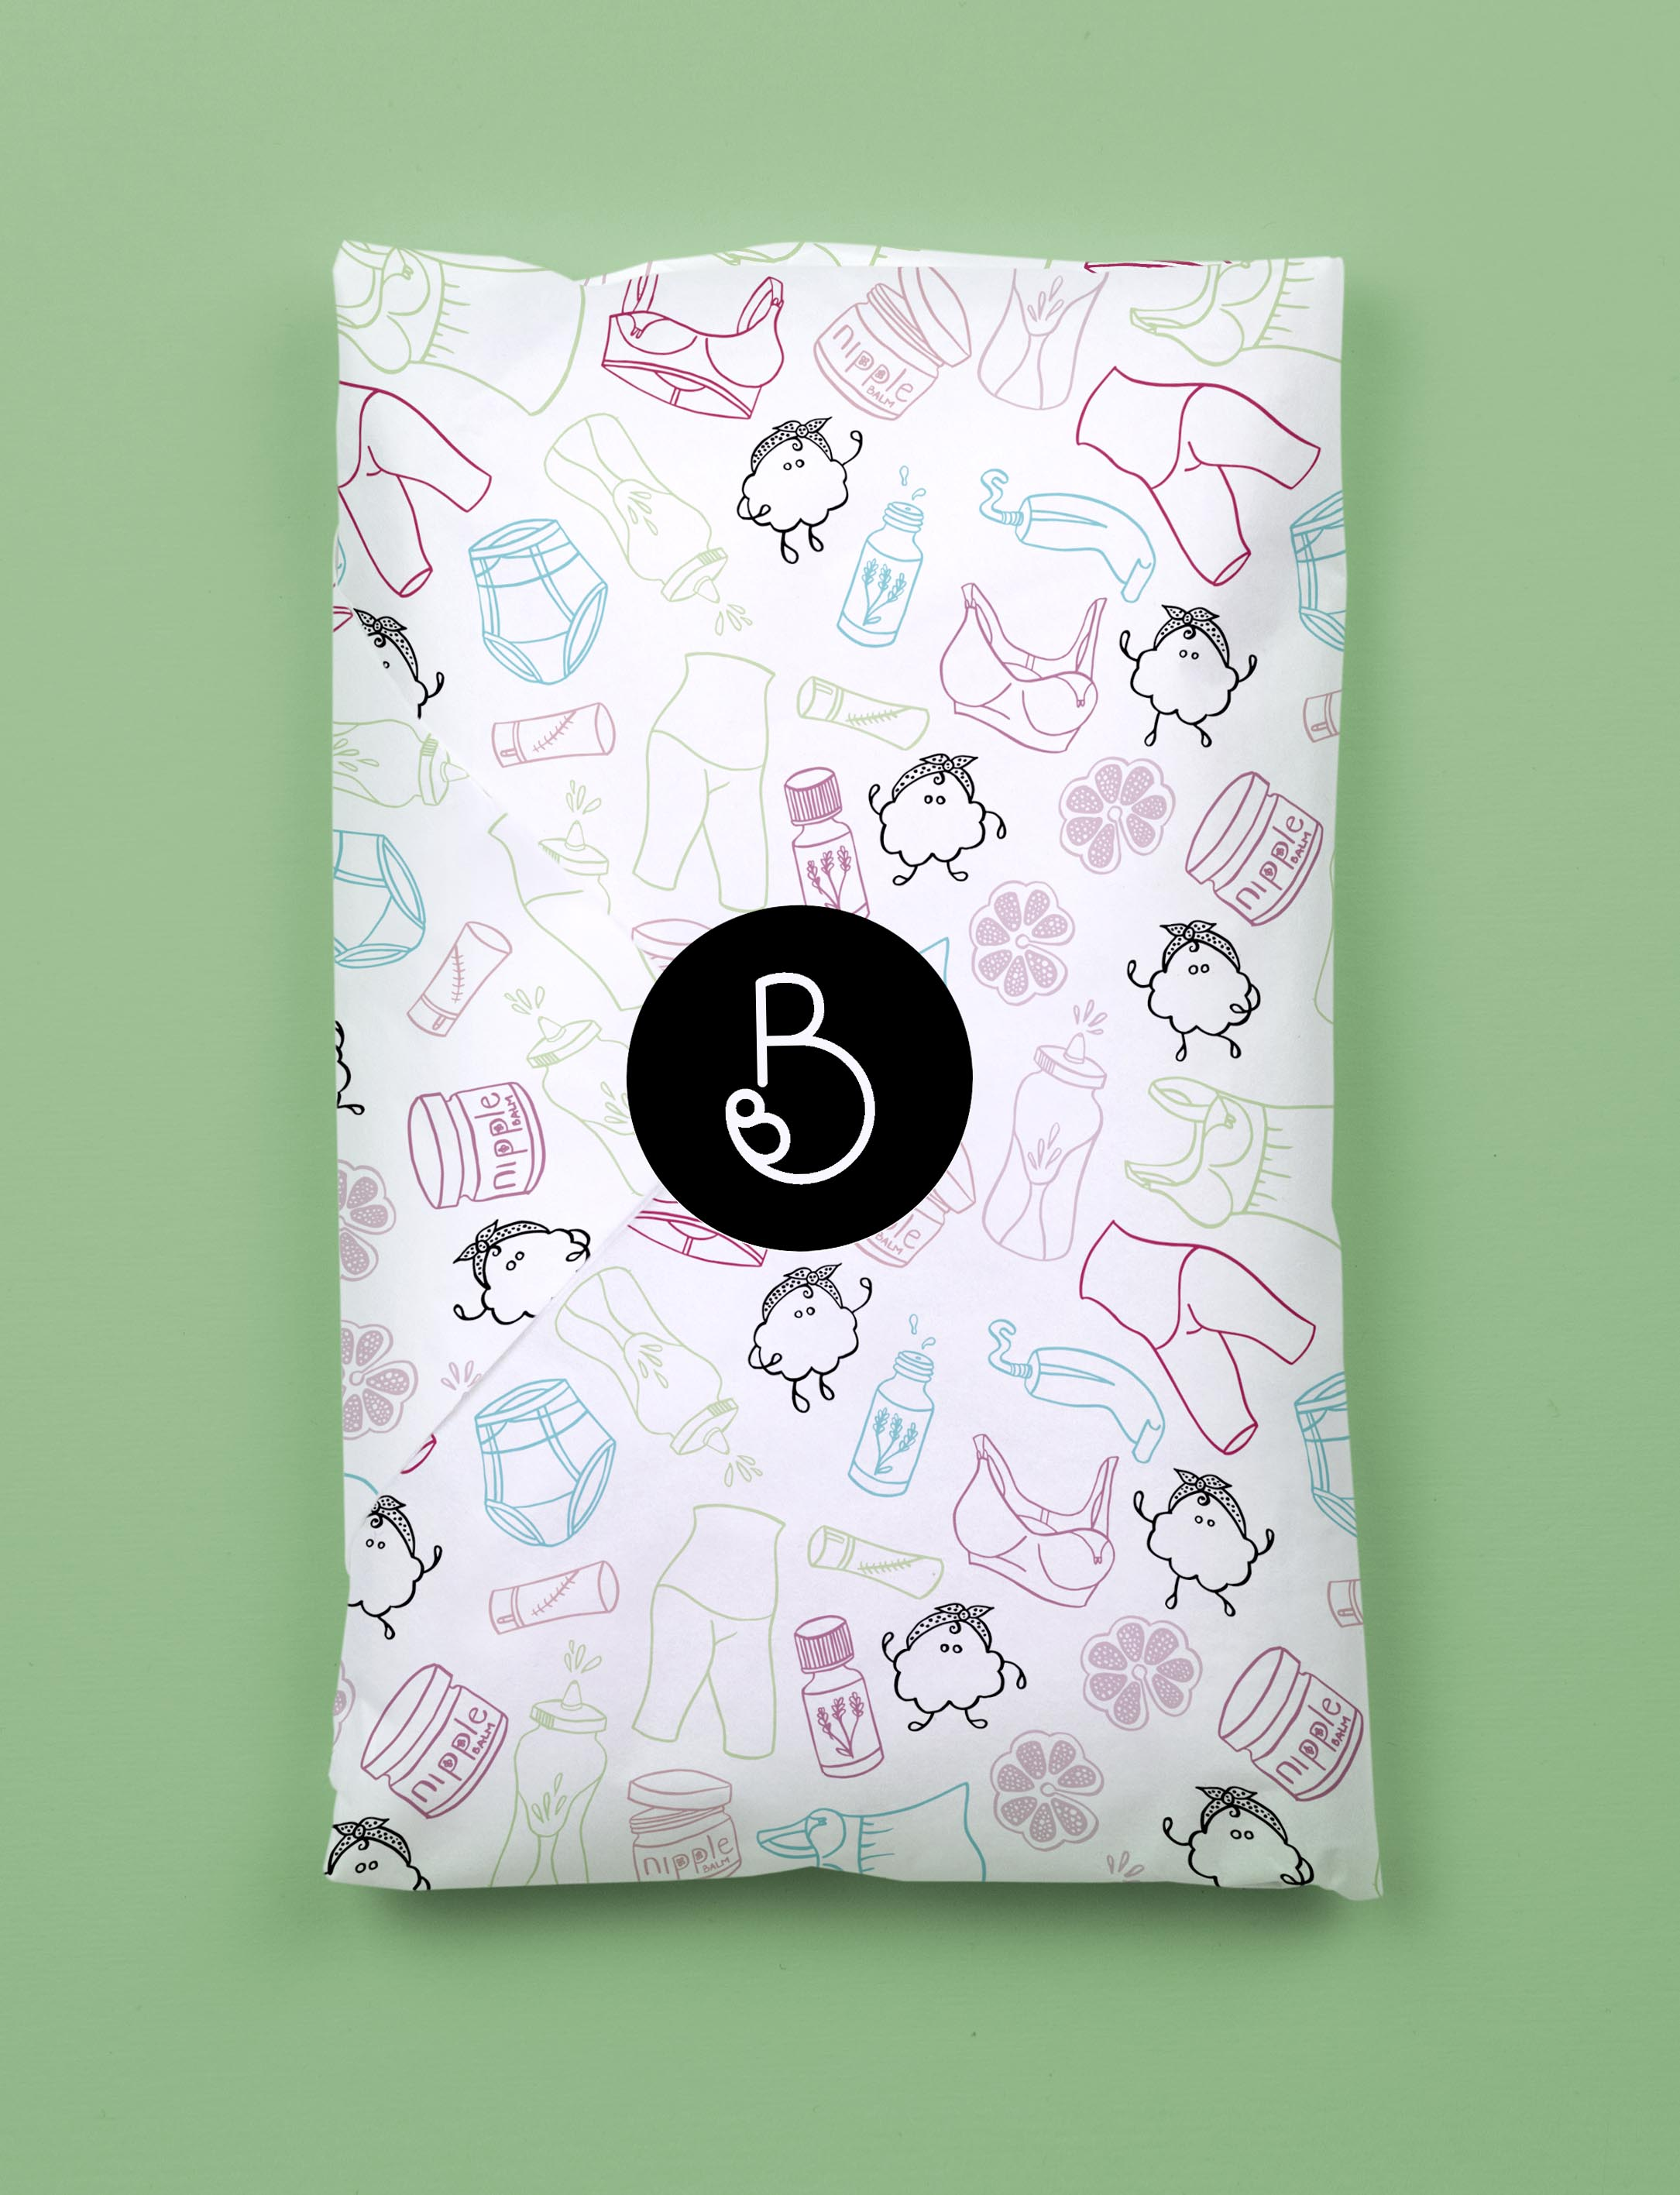 BBFB Collateral Mock Up_1b.jpg